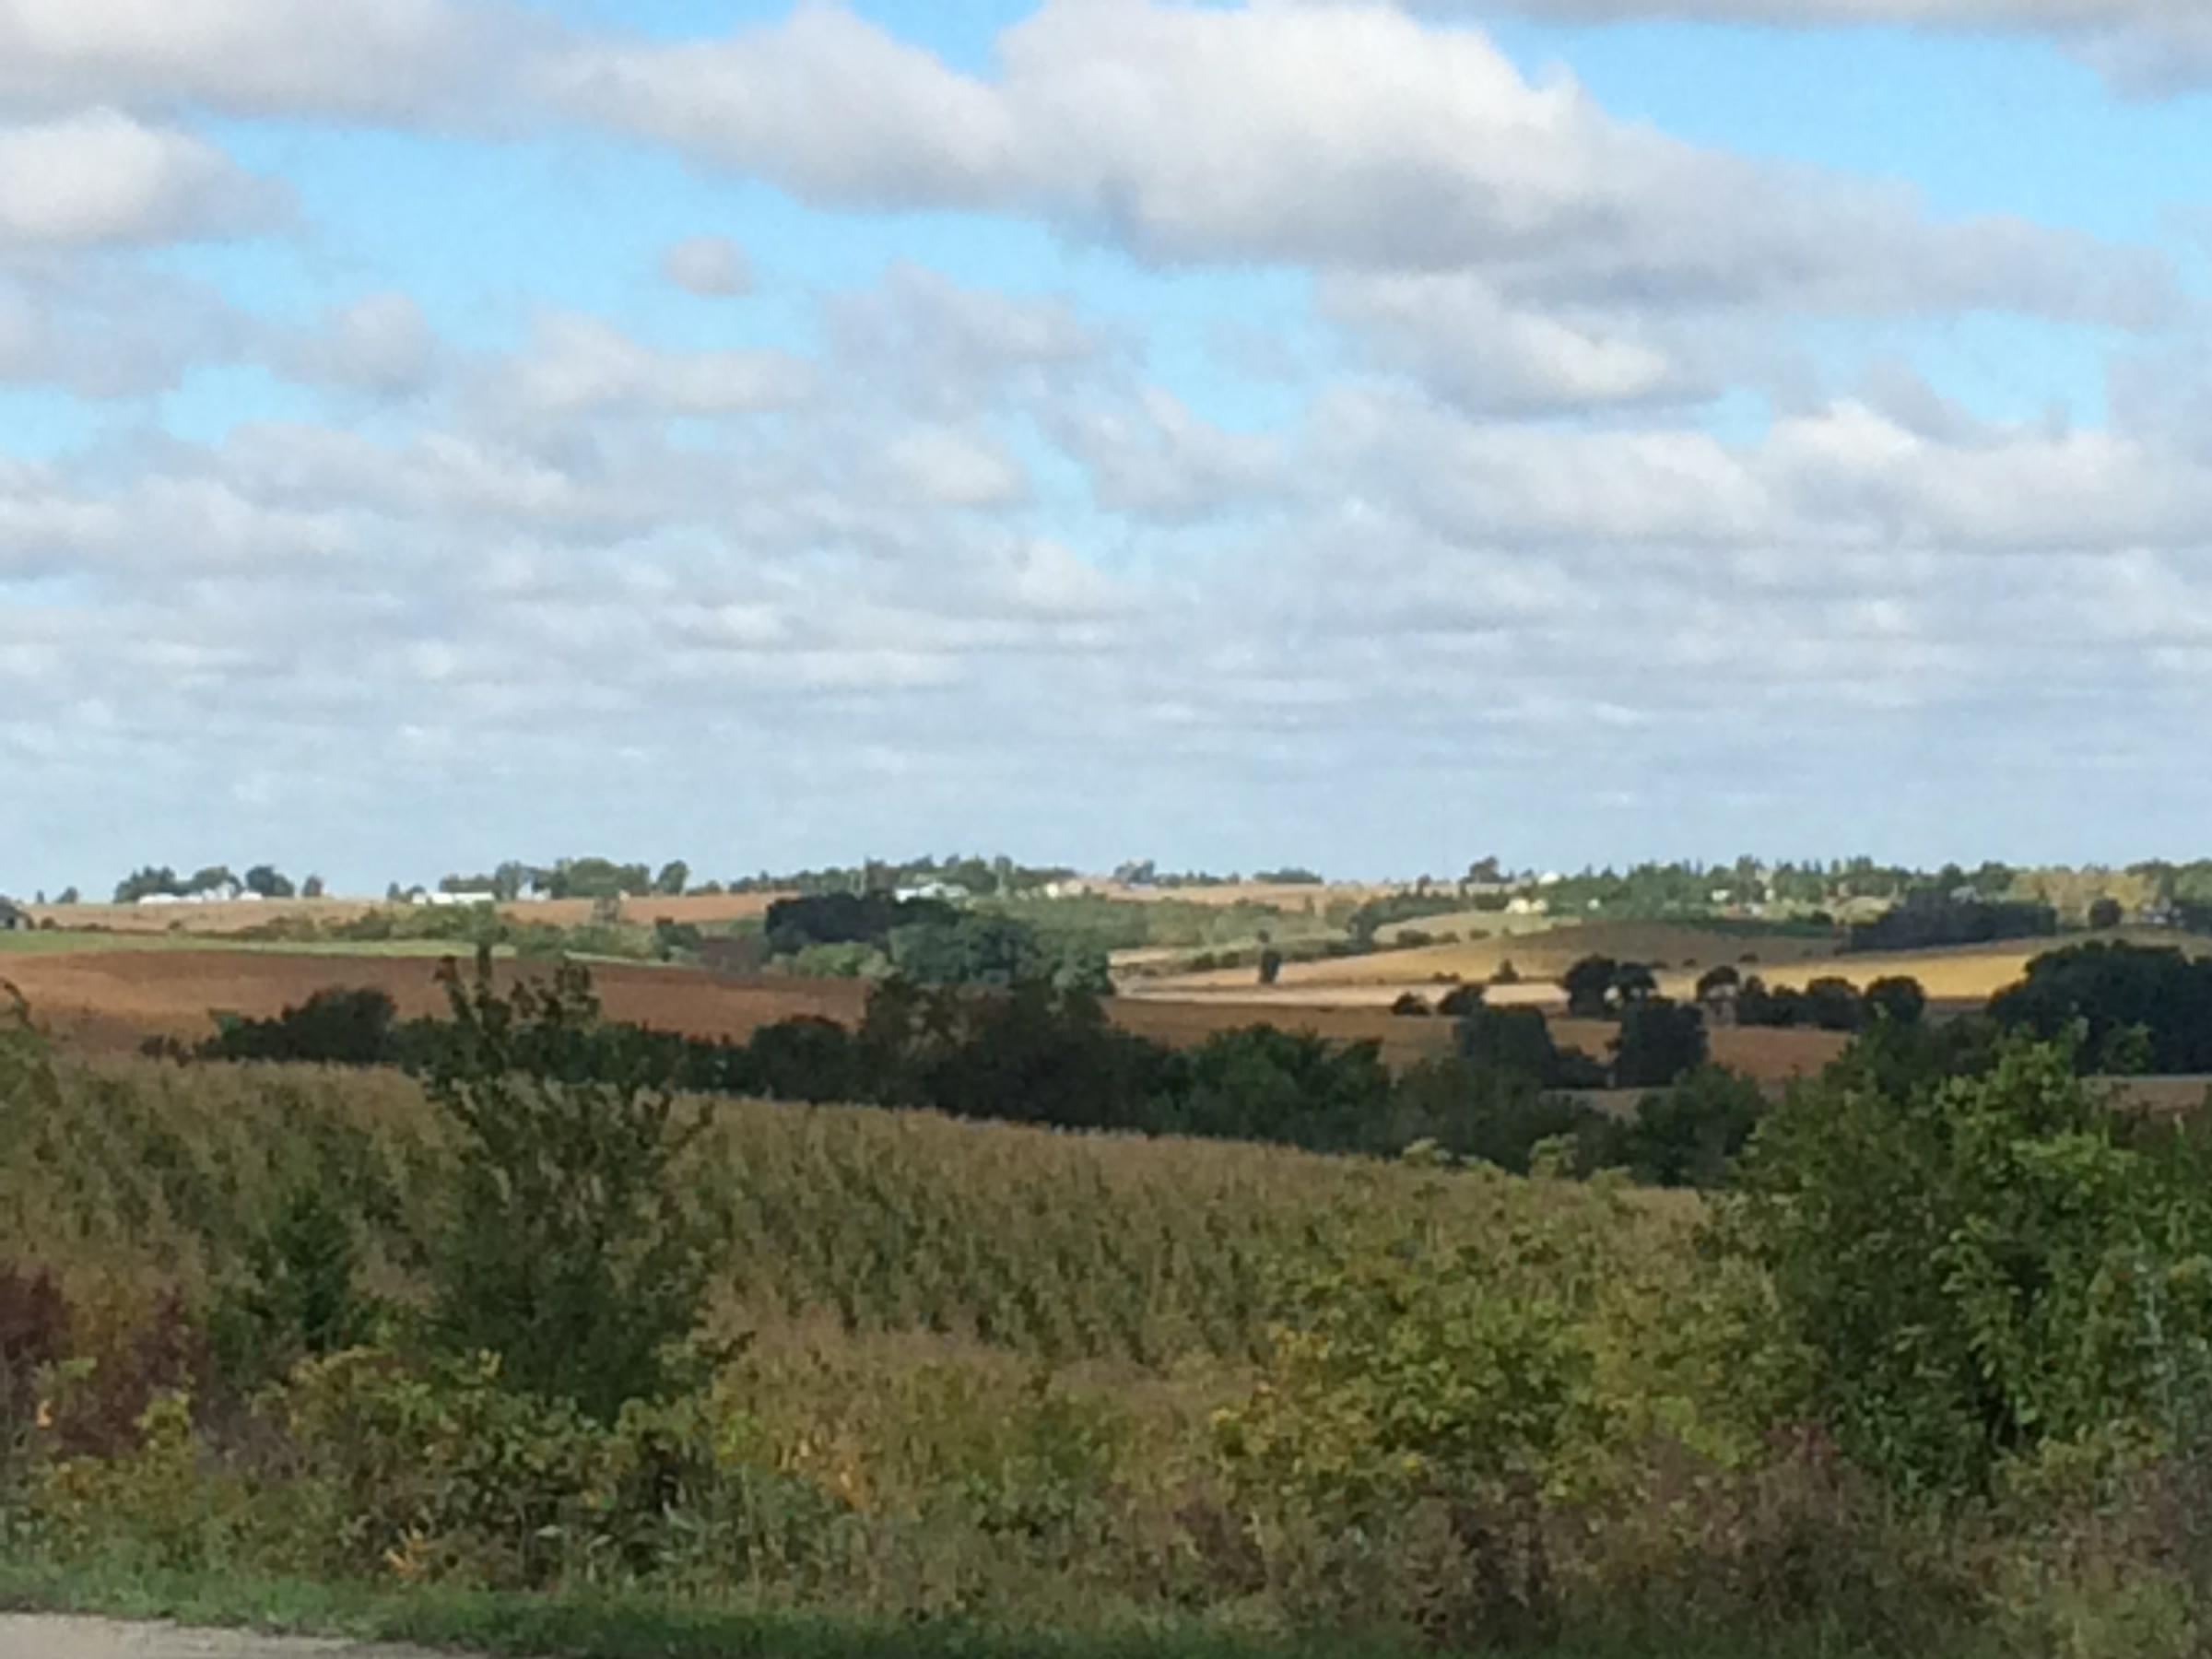 Iowa S Landscape Not So Flat After All Iowa Public Radio